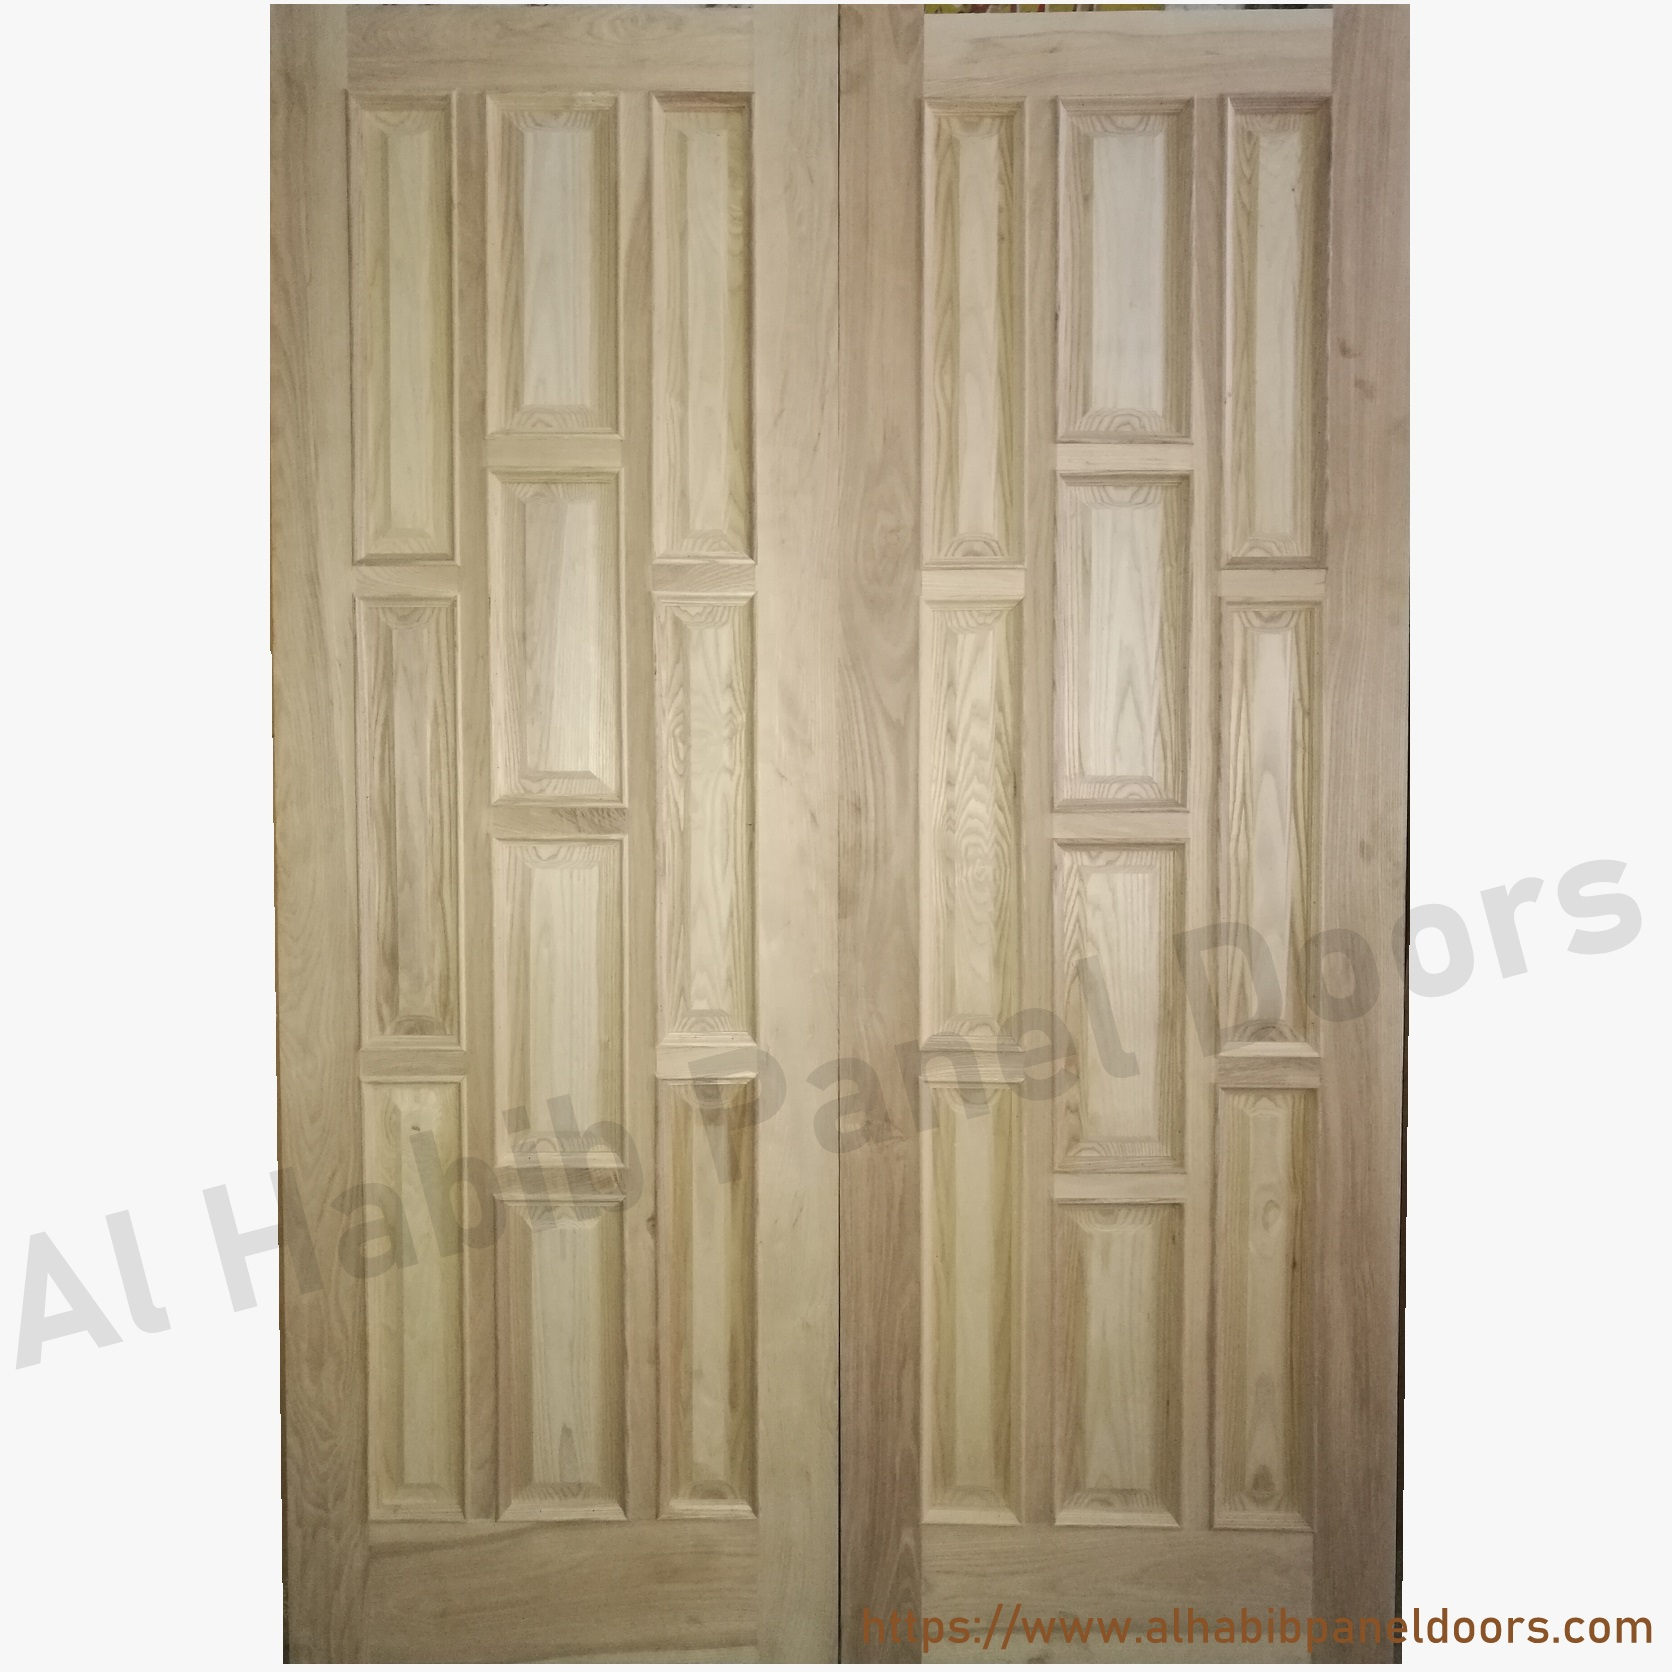 Solid wood main double door hpd413 main doors al habib for Main door design of wood